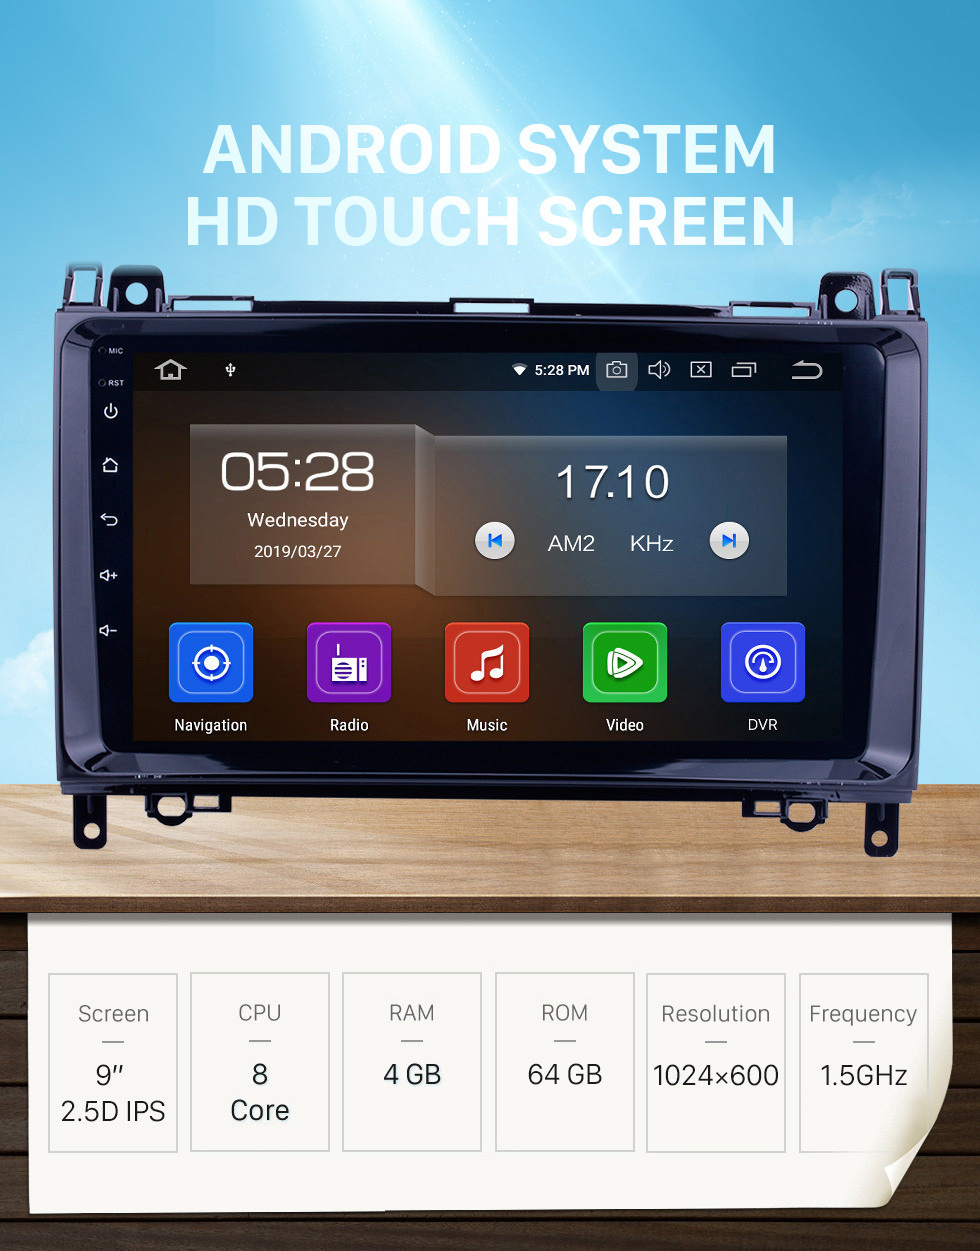 Seicane 9 inch HD 1024*600 Touch Screen Android 10.0 2006-2012 Mercedes Benz Sprinter 211 213 216 218 224 309 311 313 315 316 CDI Autoradio Navigation Head Unit with CD DVD Player Bluetooth AUX 3G WiFi HD 1080P OBD2 Mirror Link Backup Camera